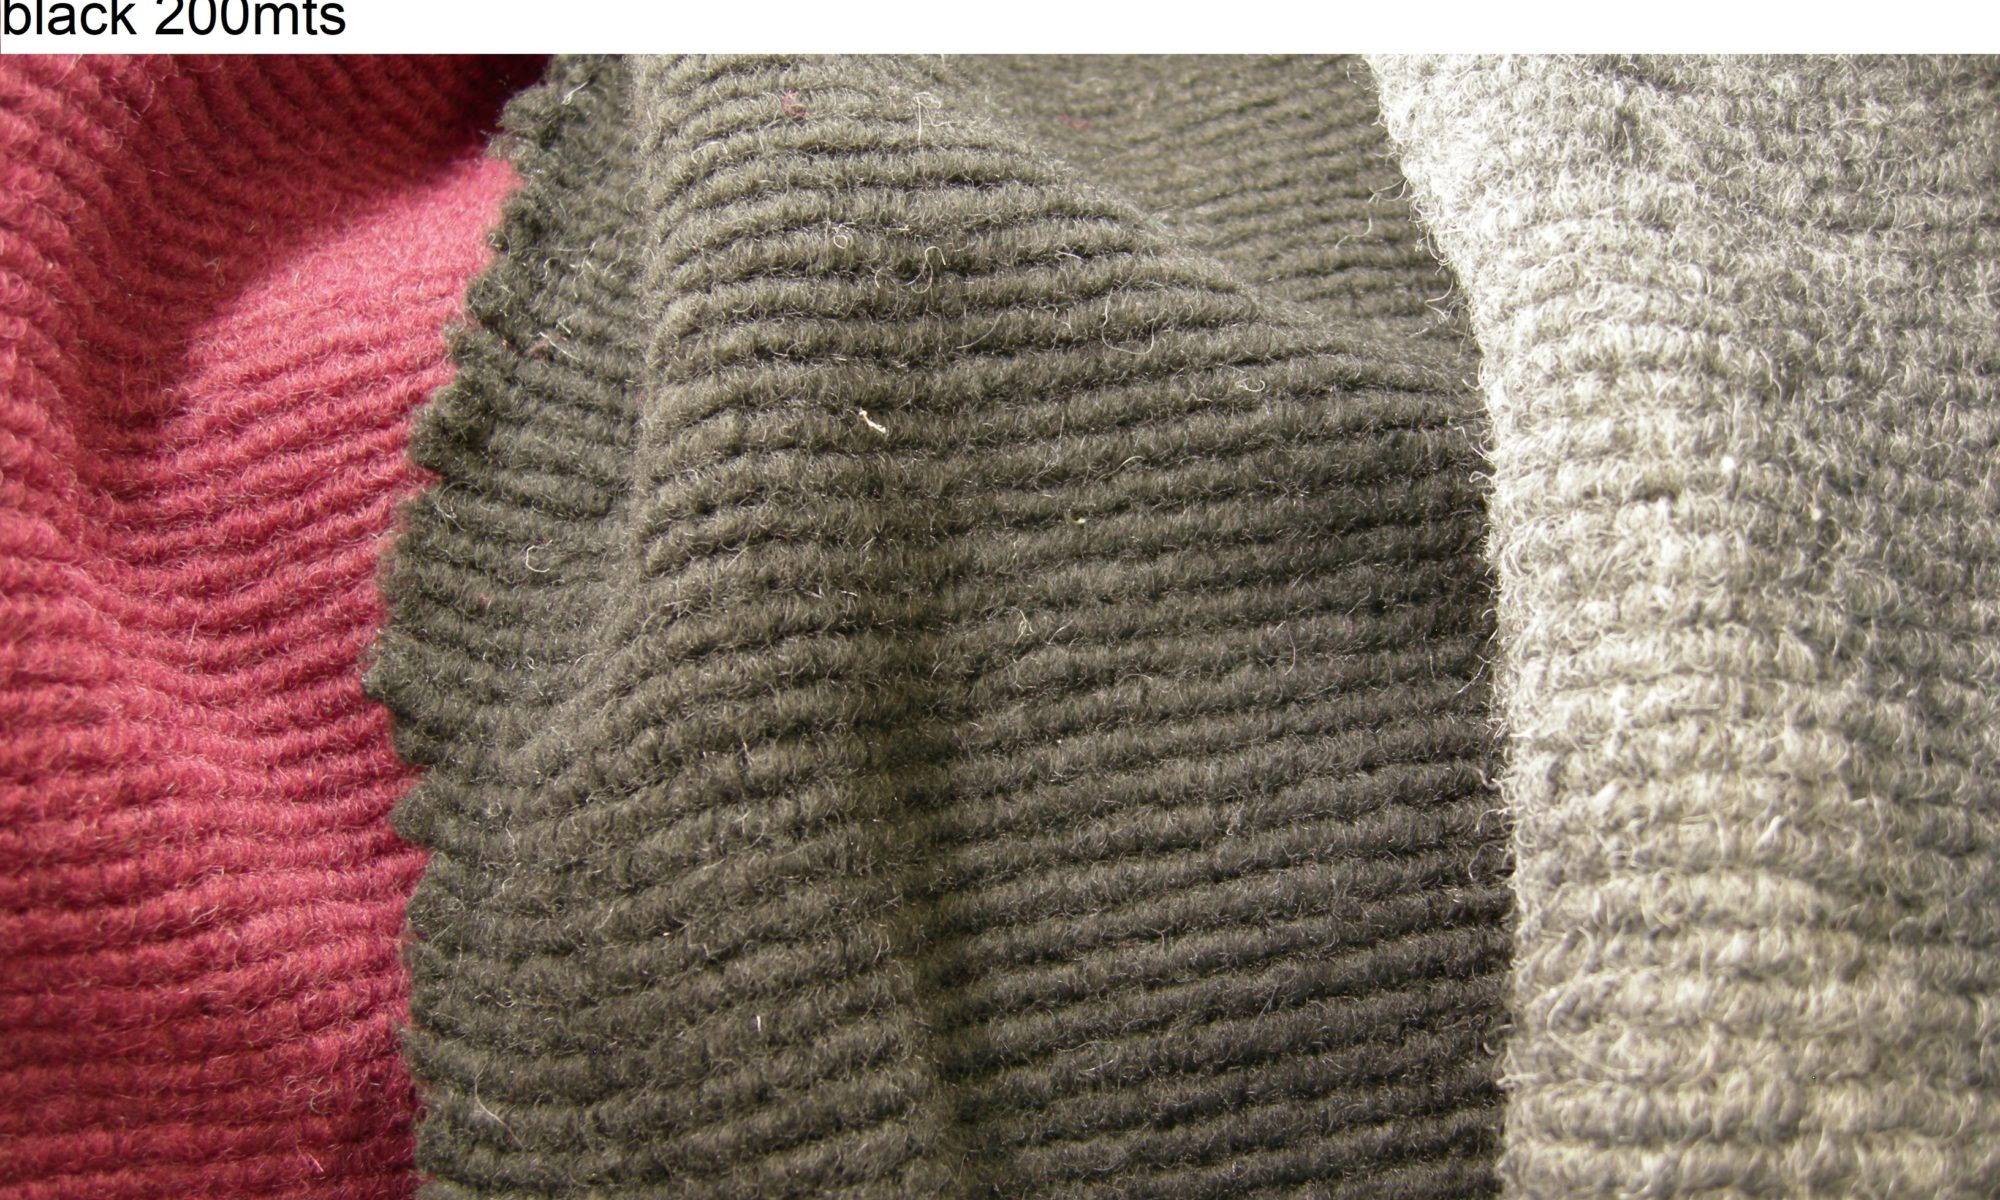 ART 7136 rib boiled wool coat fabric WIDTH cm160 WEIGHT gr460 COMPOSITION 60 polyester 37 wool 3 others - Red 100mts – grey and black 200mts